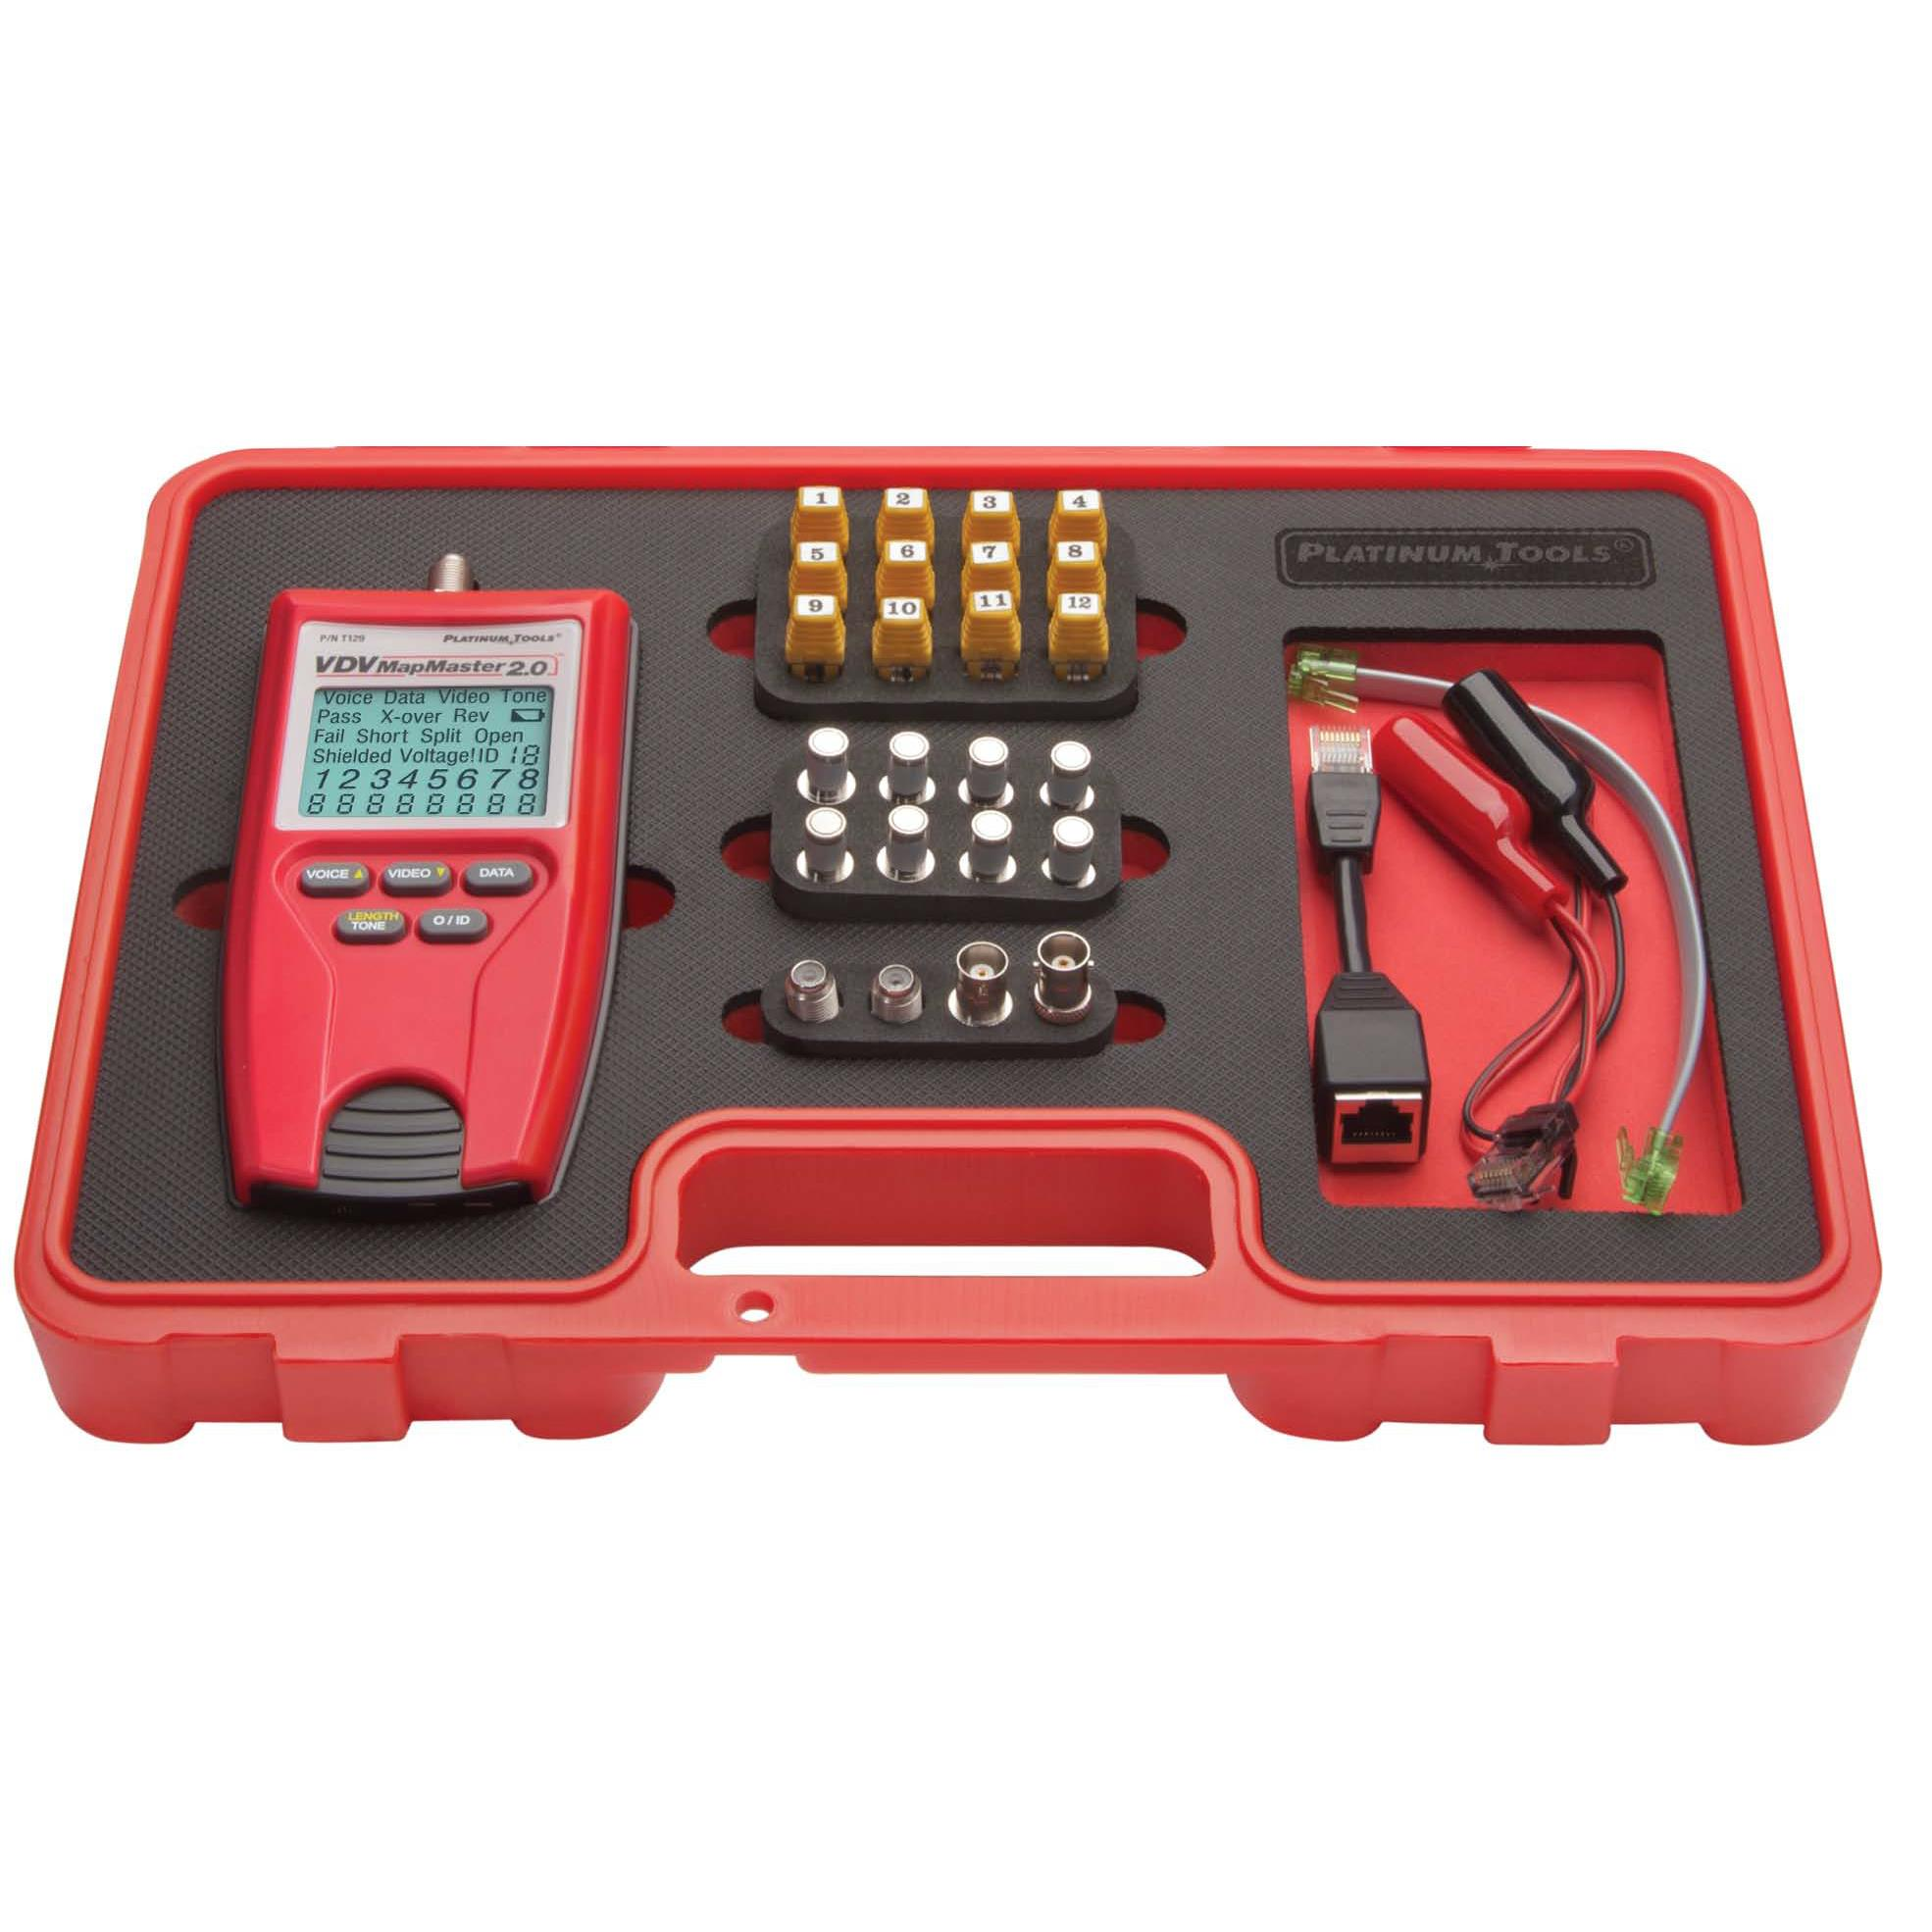 Platinum Tools T129K1 VDV MapMaster 2.0 Kit Lan Cable Tester and Mapper